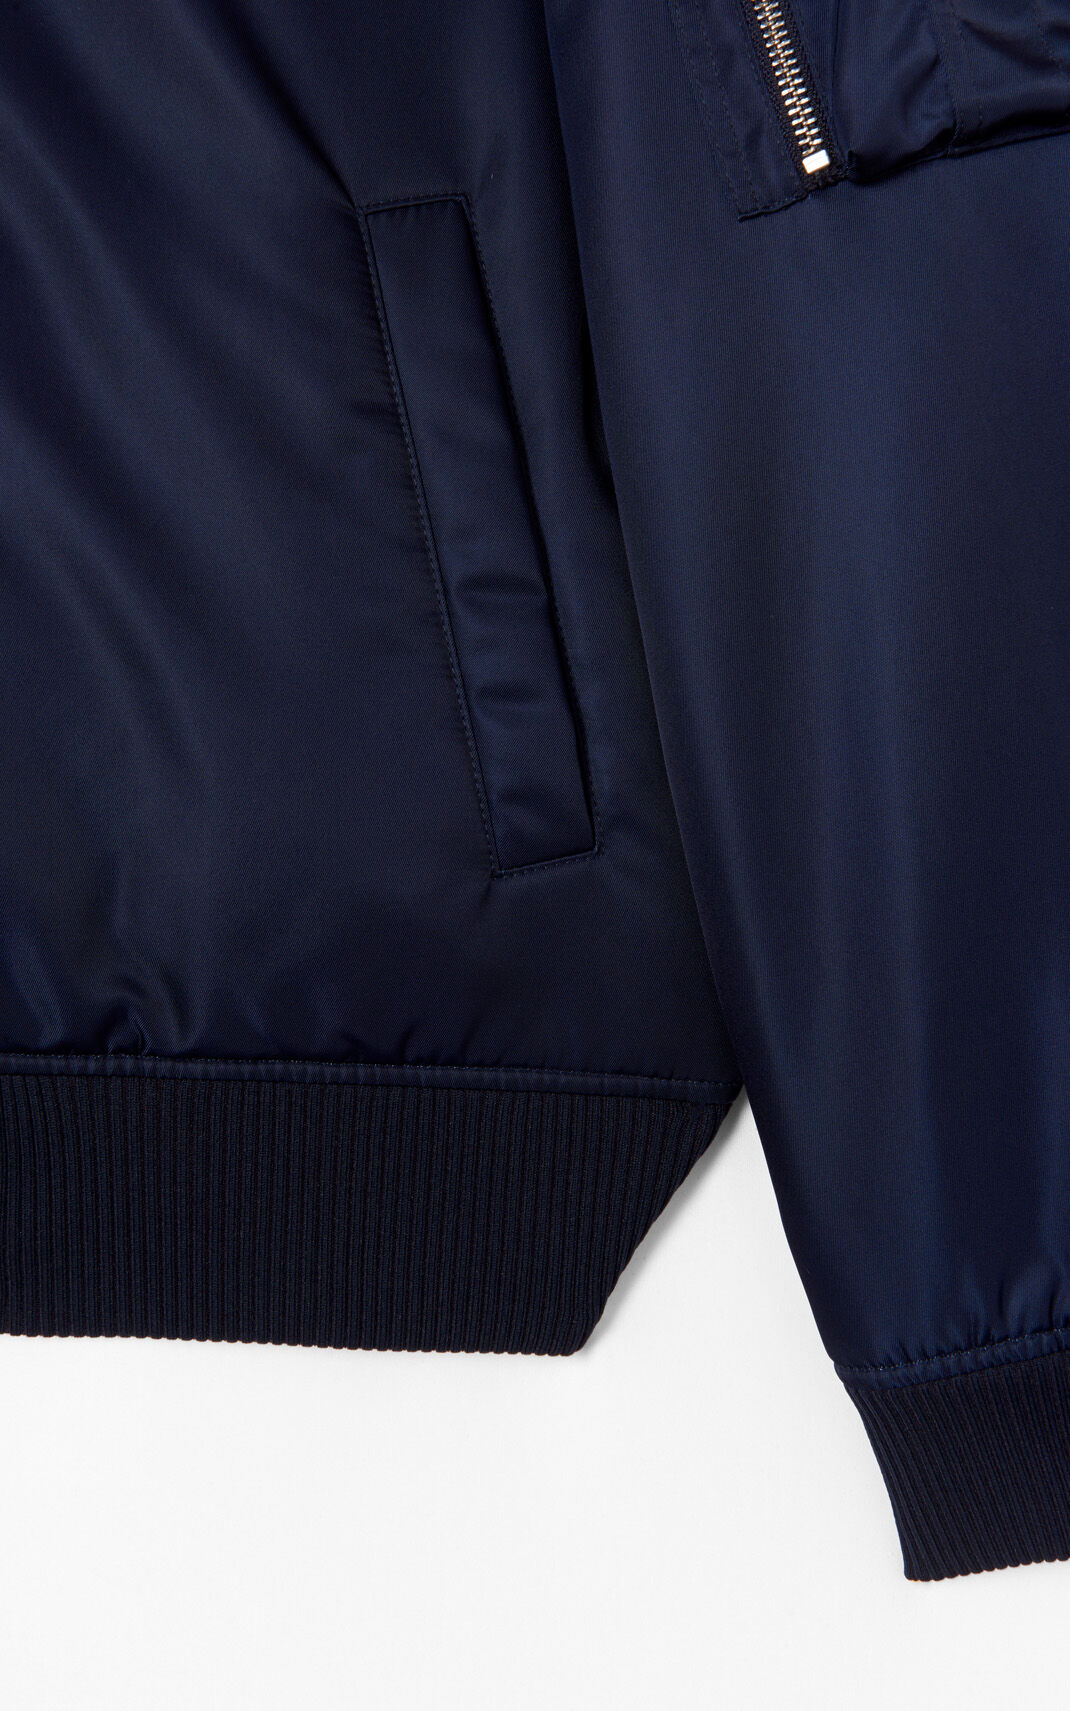 NAVY BLUE 'KENZO Signature' bomber jacket for men